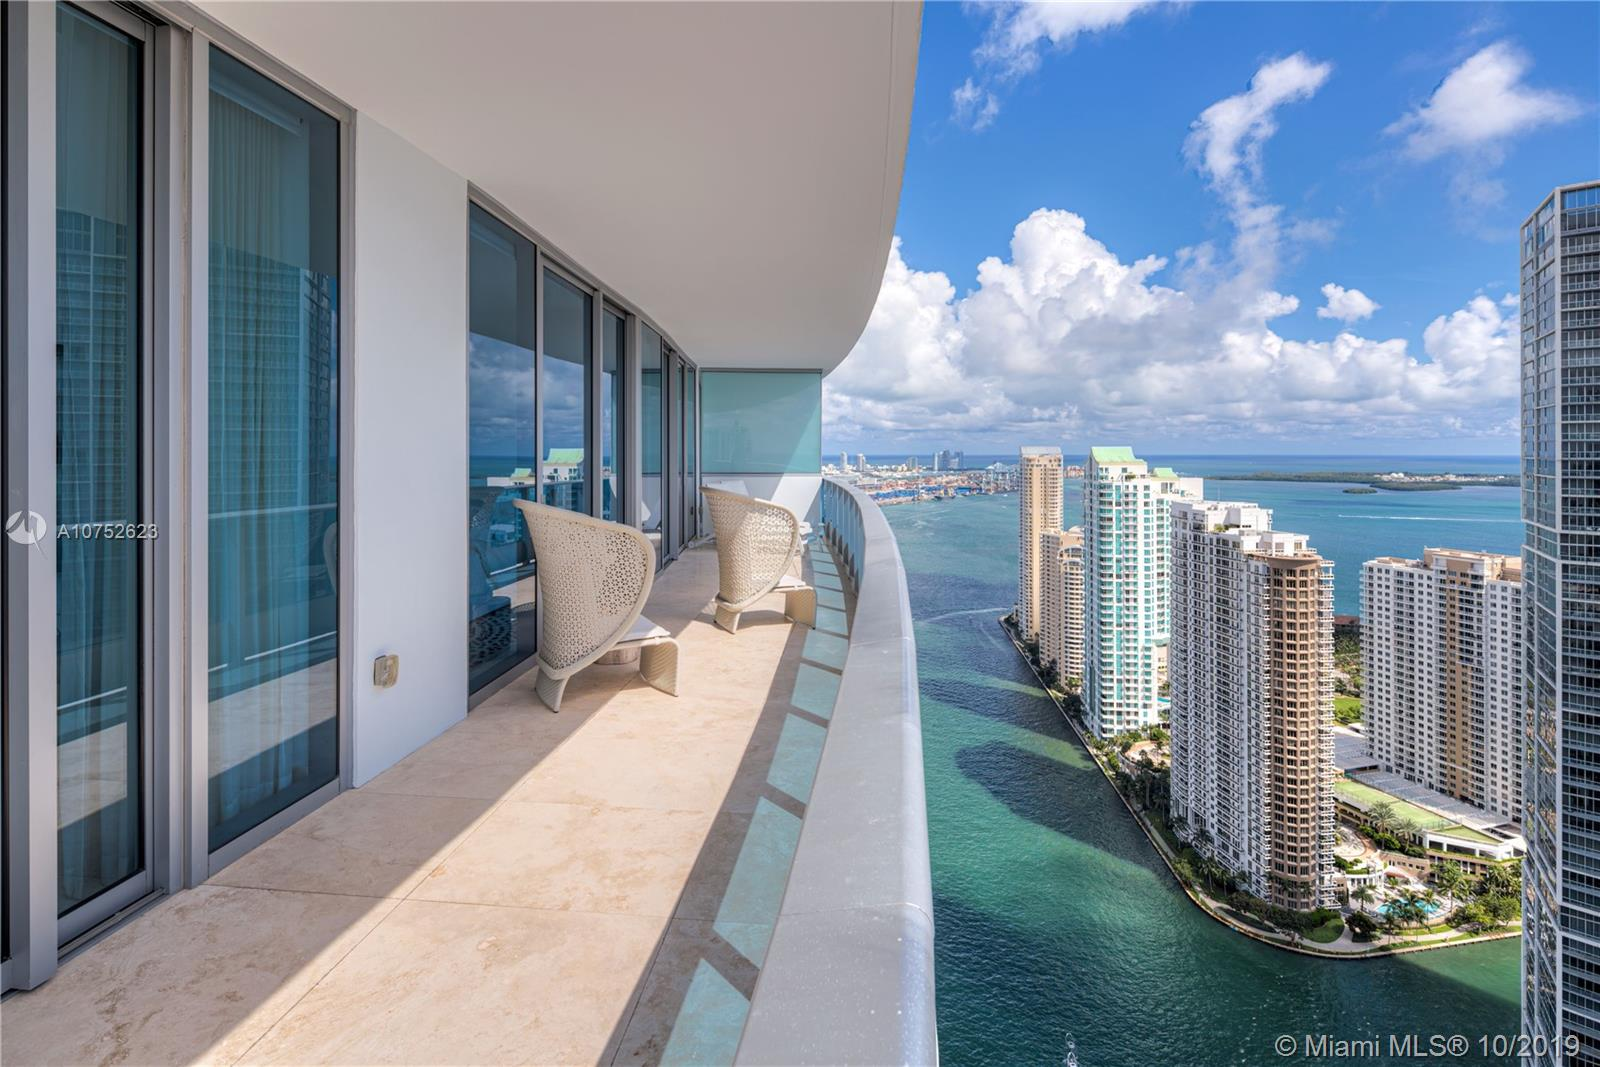 The epitome of luxury in this Epic Residence featuring the finest finishes. The breathtaking & unubstructed views over Biscayne Bay, Brickell & Key Biscayneare stunning. This corner unit with 10ft ceilings with floor to floor ceiling windows creates aninside/outside environment where everyday the light brings a new feel to this space. Limestone floors, built in Millwork entertainment cabinet, solar  shades, upgraded appliances all are details beyond expectations.  Epic has great amenities such as private pool for residences and many other shared concierge-style elements shared with The Epic Hotel. Home to world class dining with Zuma and Area 3. 2 parking spaces.  Epic is your dreamspace you've been waiting for.